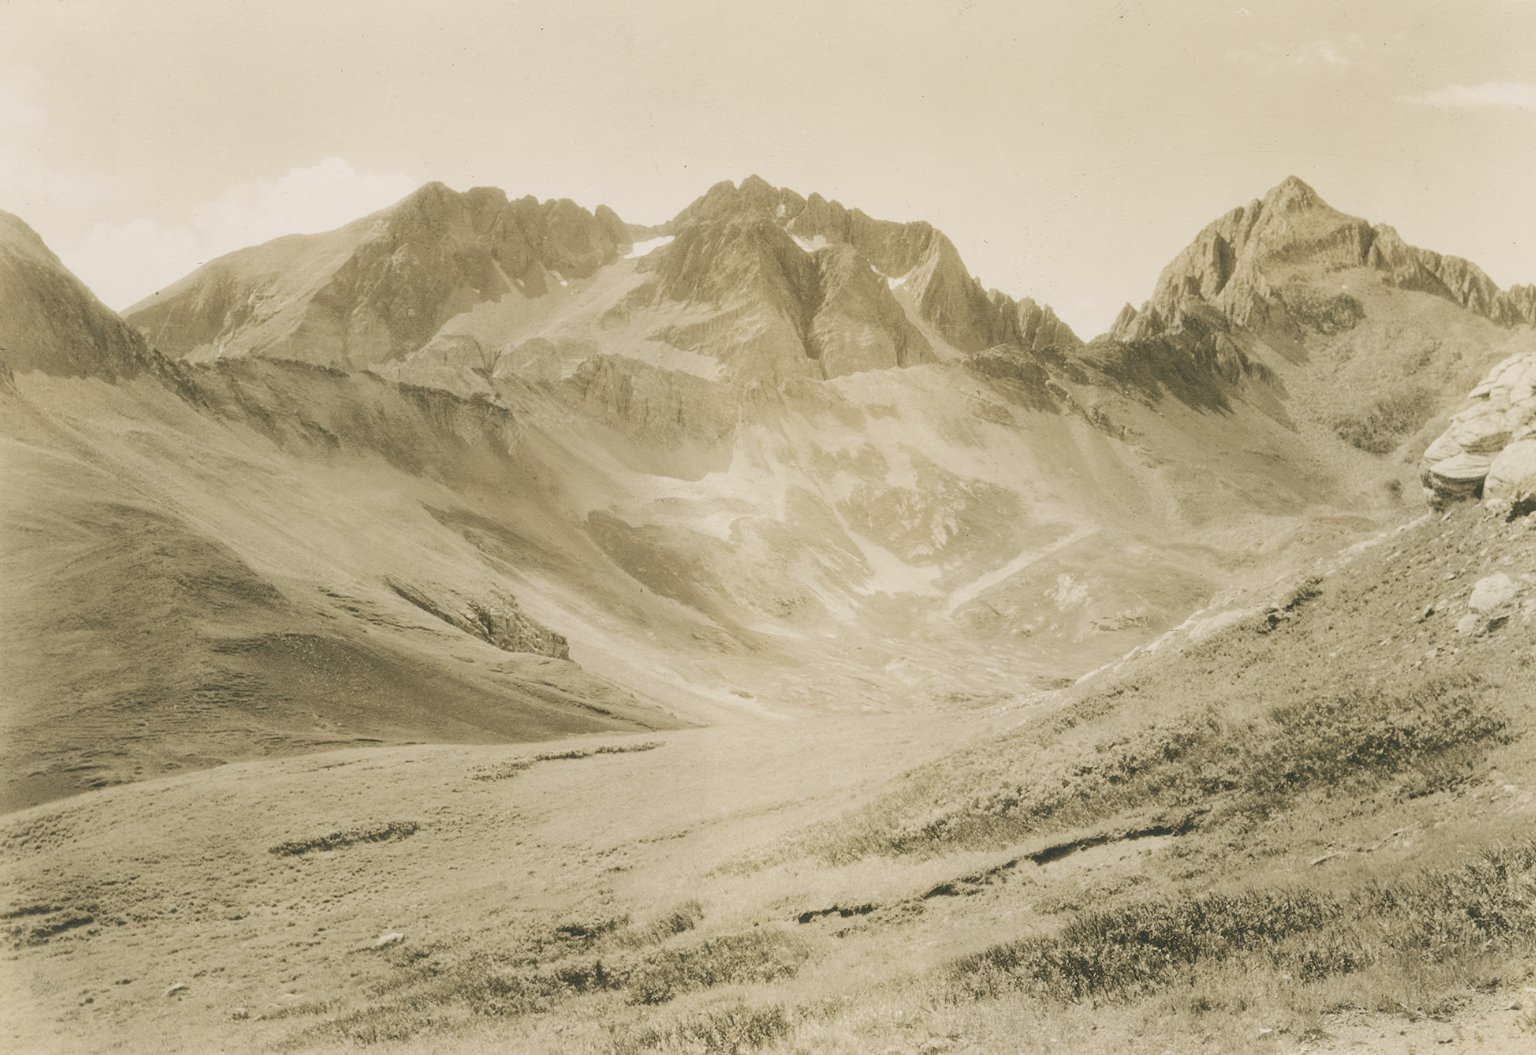 Untitled photo of alpine bowl, backed by several jagged peaks.